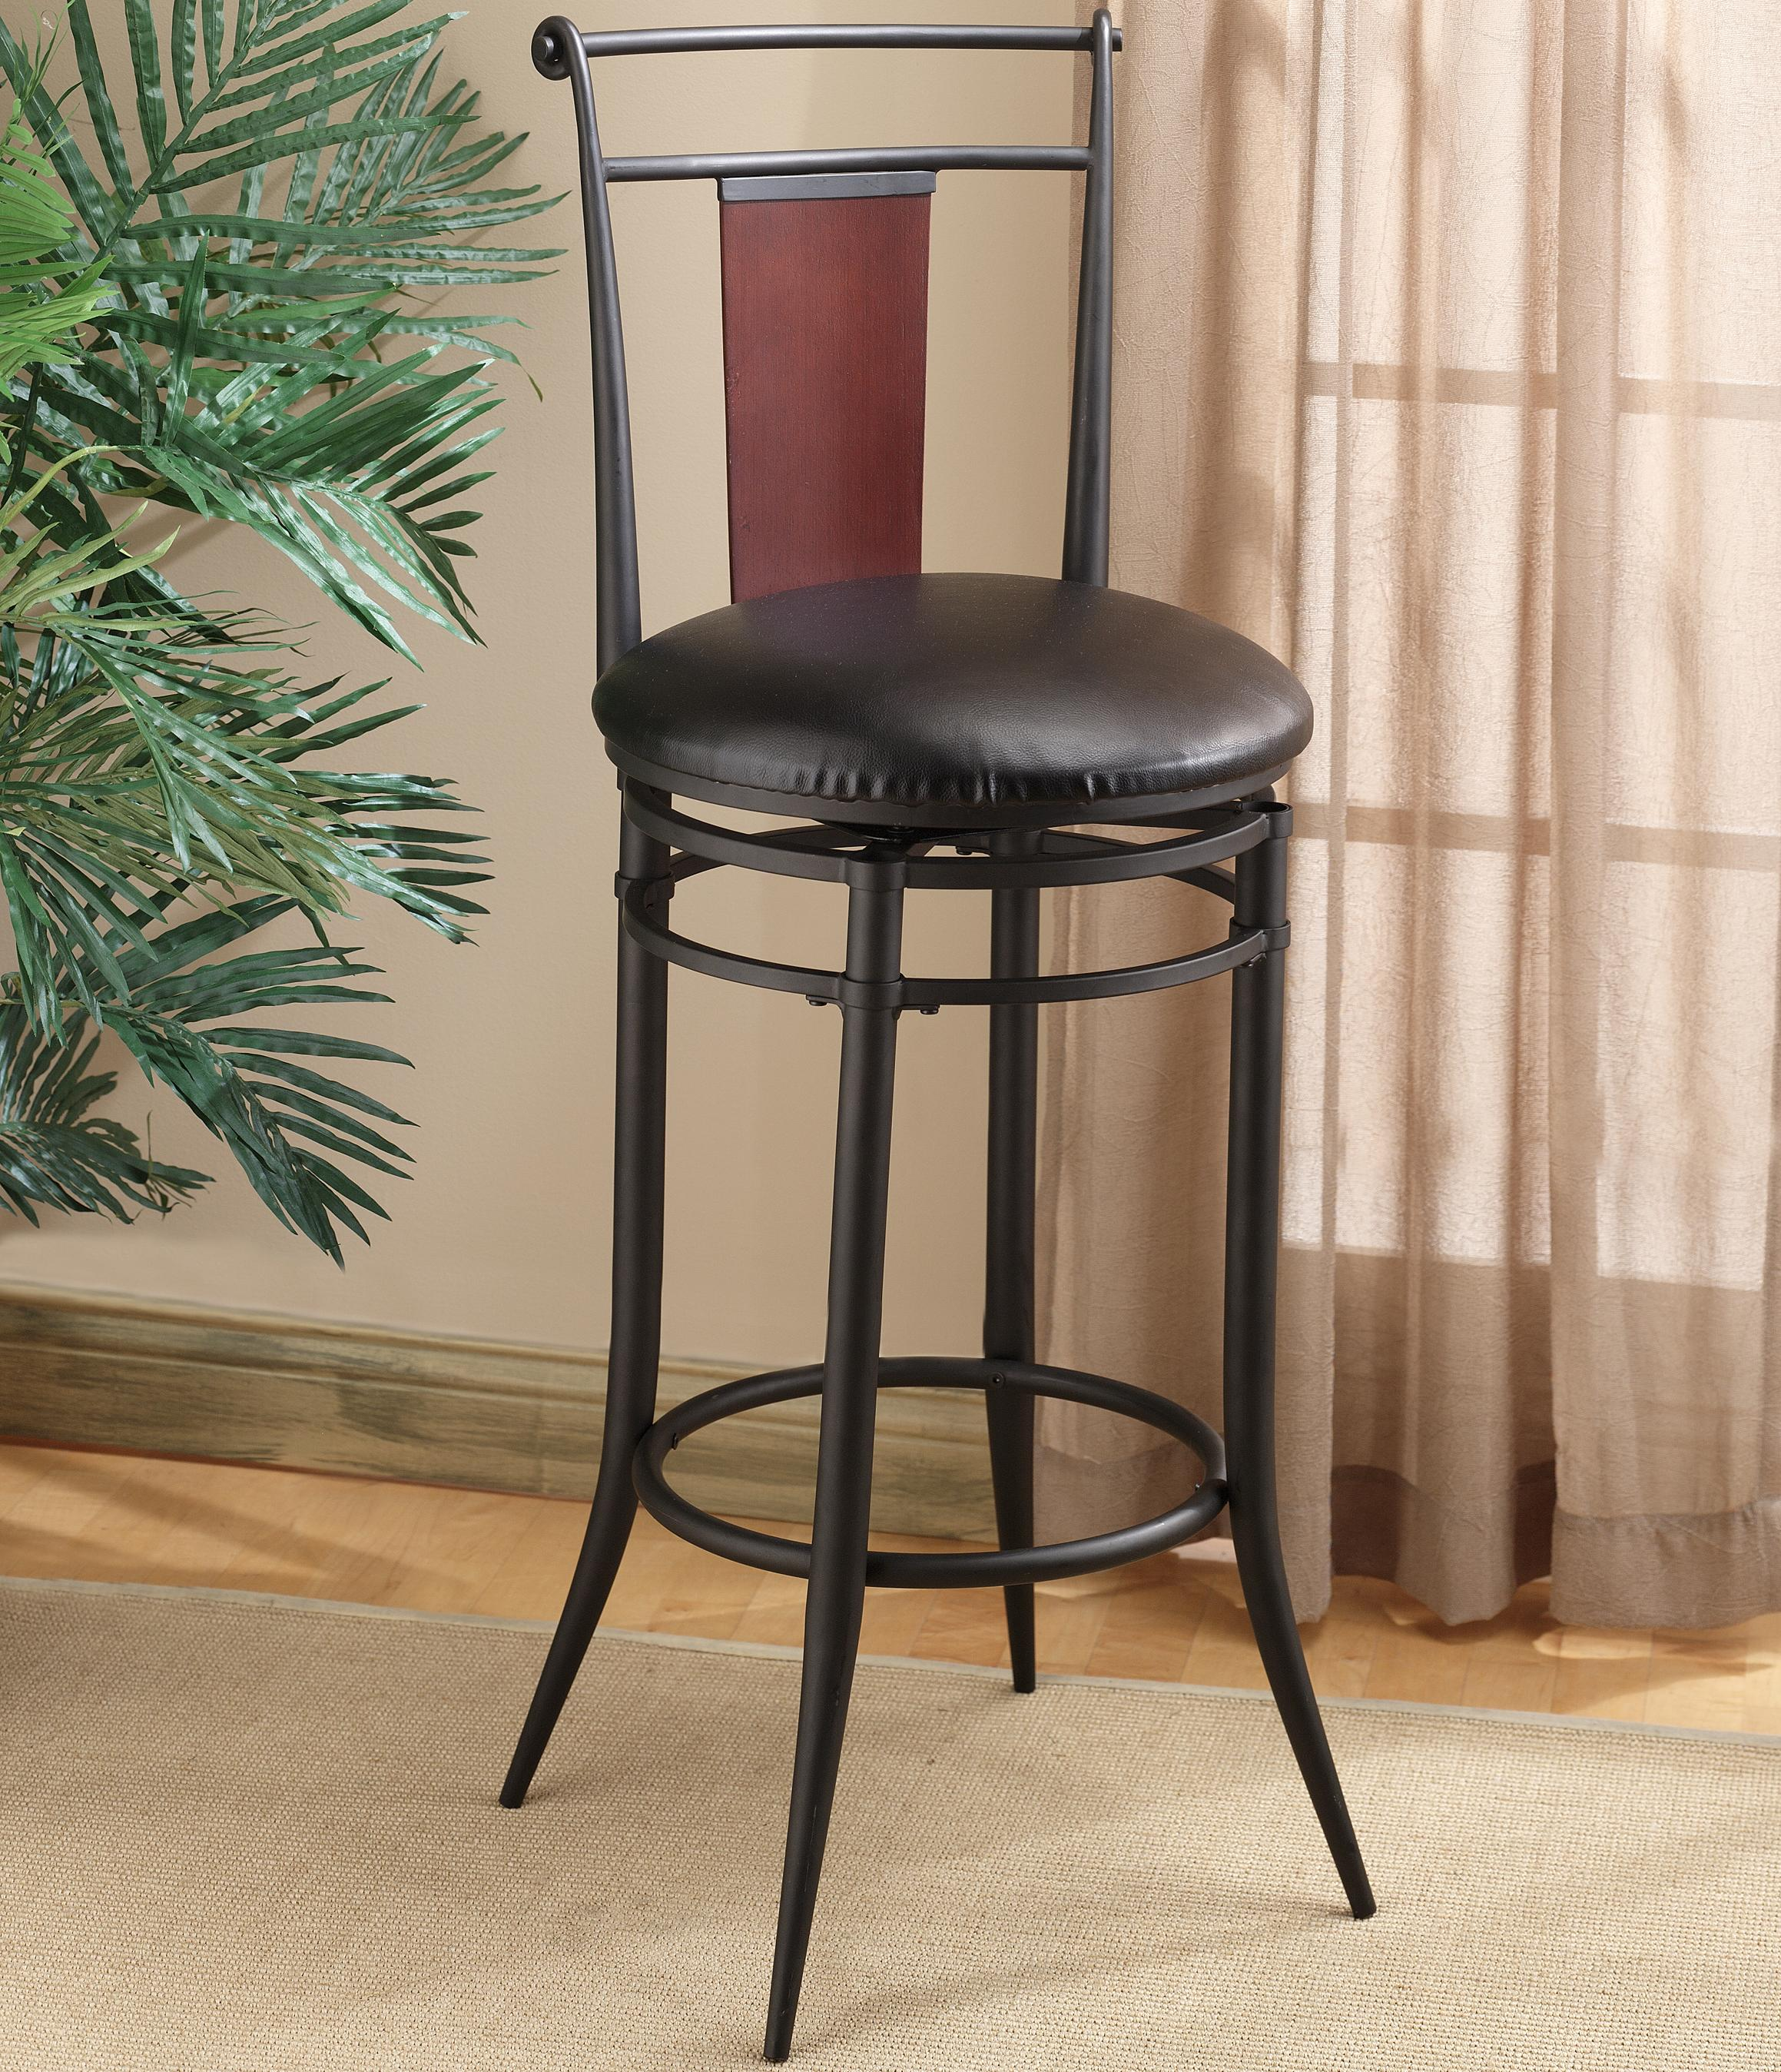 Metal stools 24 5 counter height midtown stool by hillsdale wolf furniture - Aluminum counter height stools ...